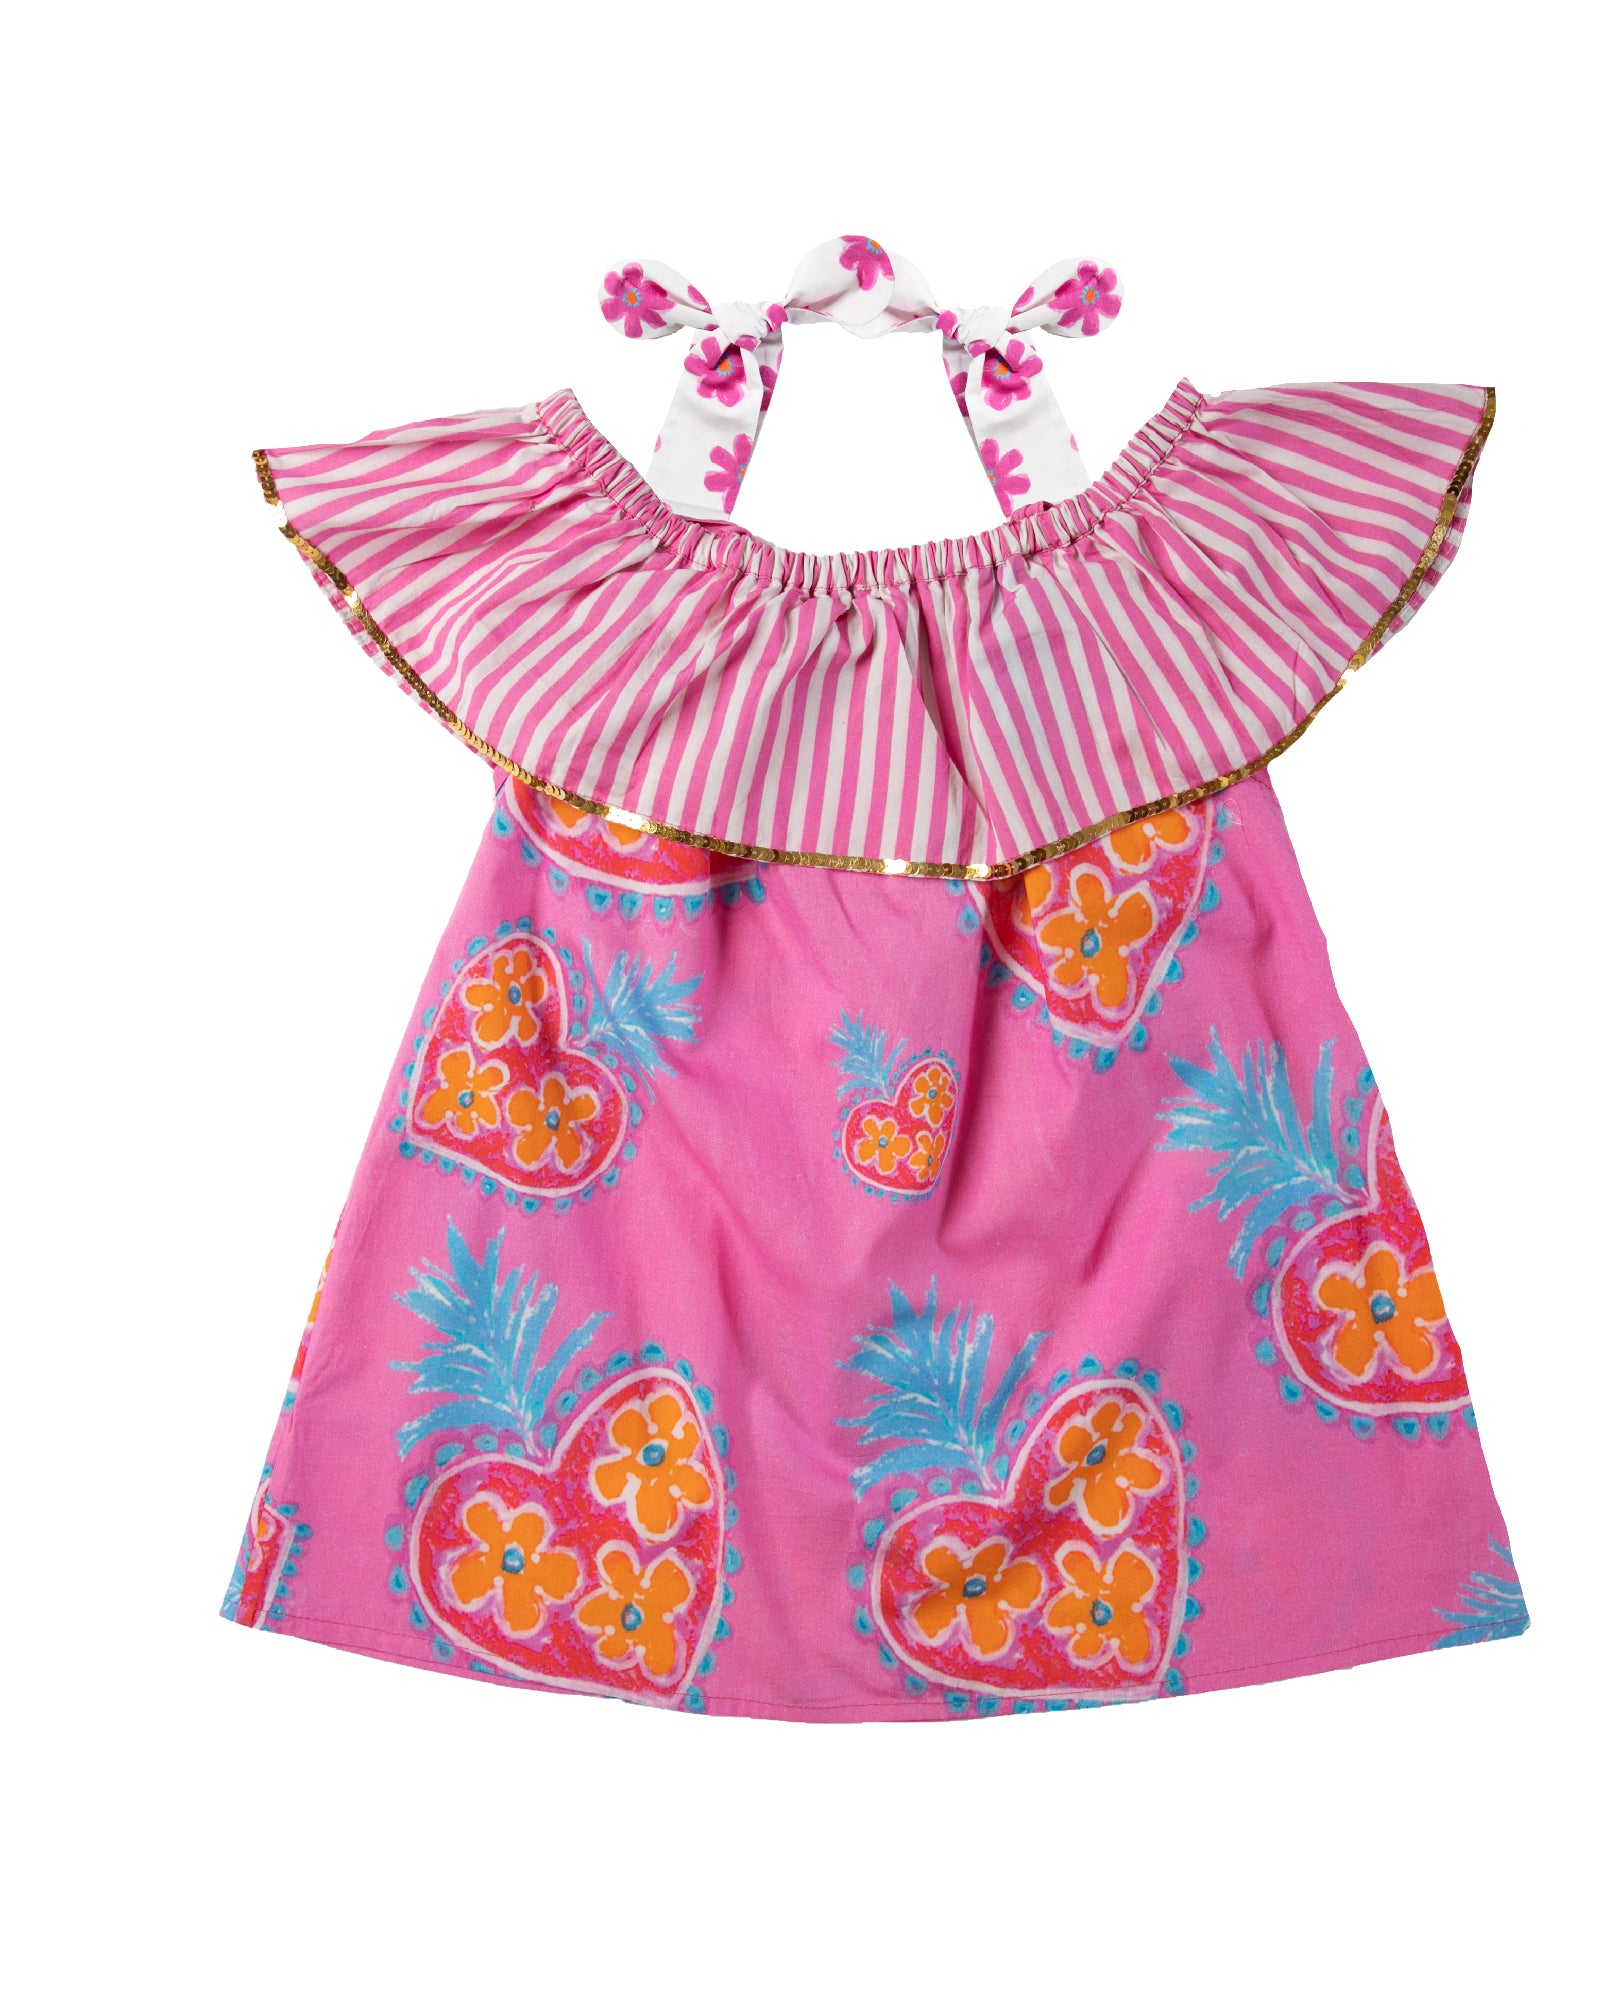 The Coral OTS Sacred Heart Girls Dress by Bonita Bambino - Back